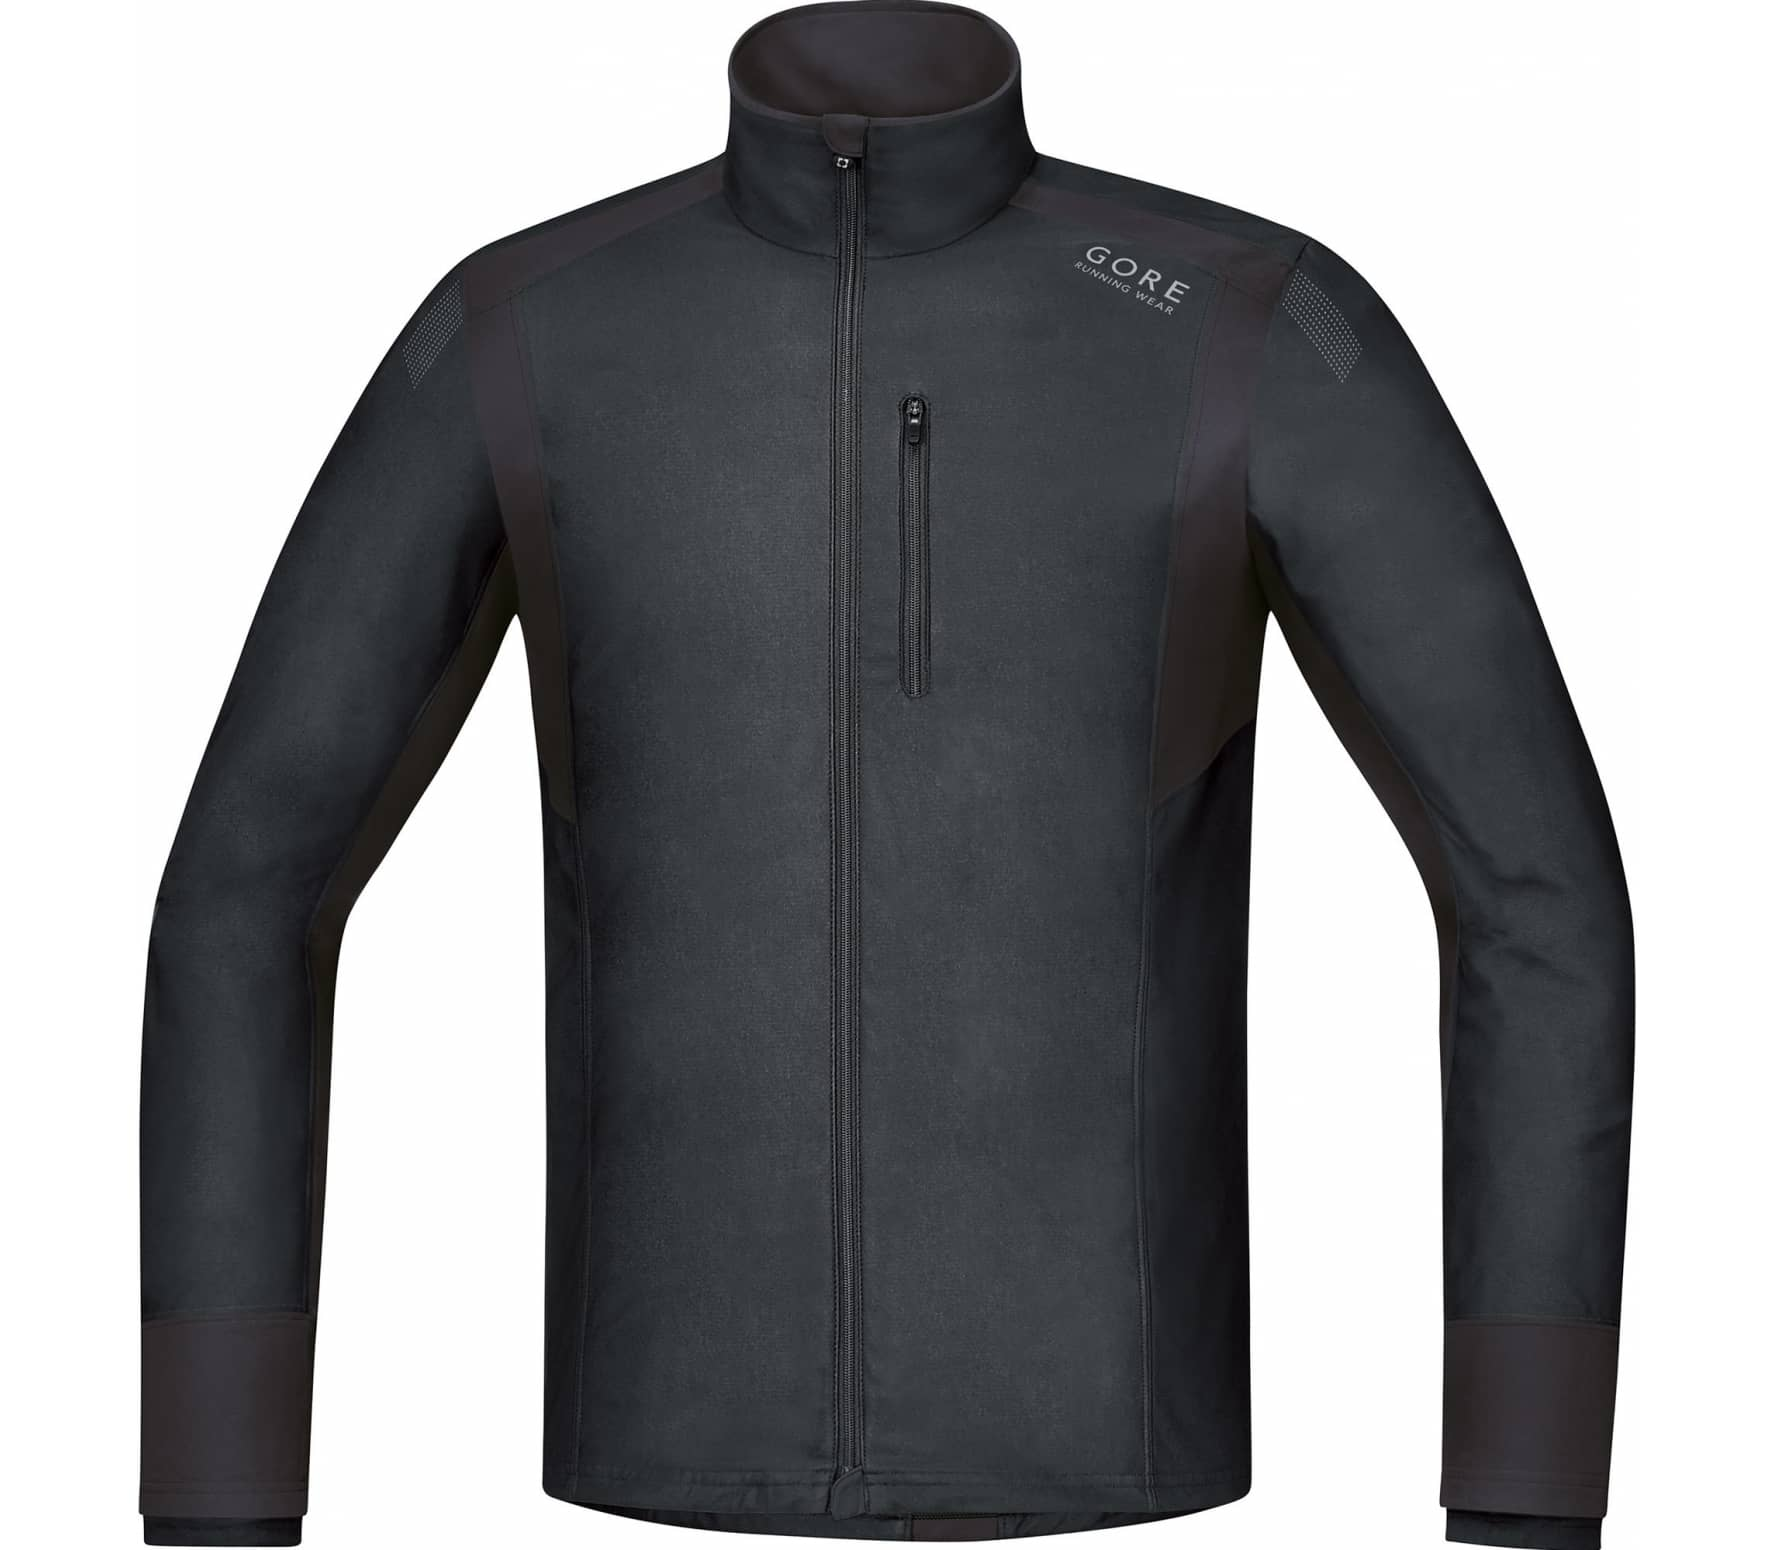 GORE Wear® - Air GWS long-sleeved men's running jacket (anthracite) - S thumbnail